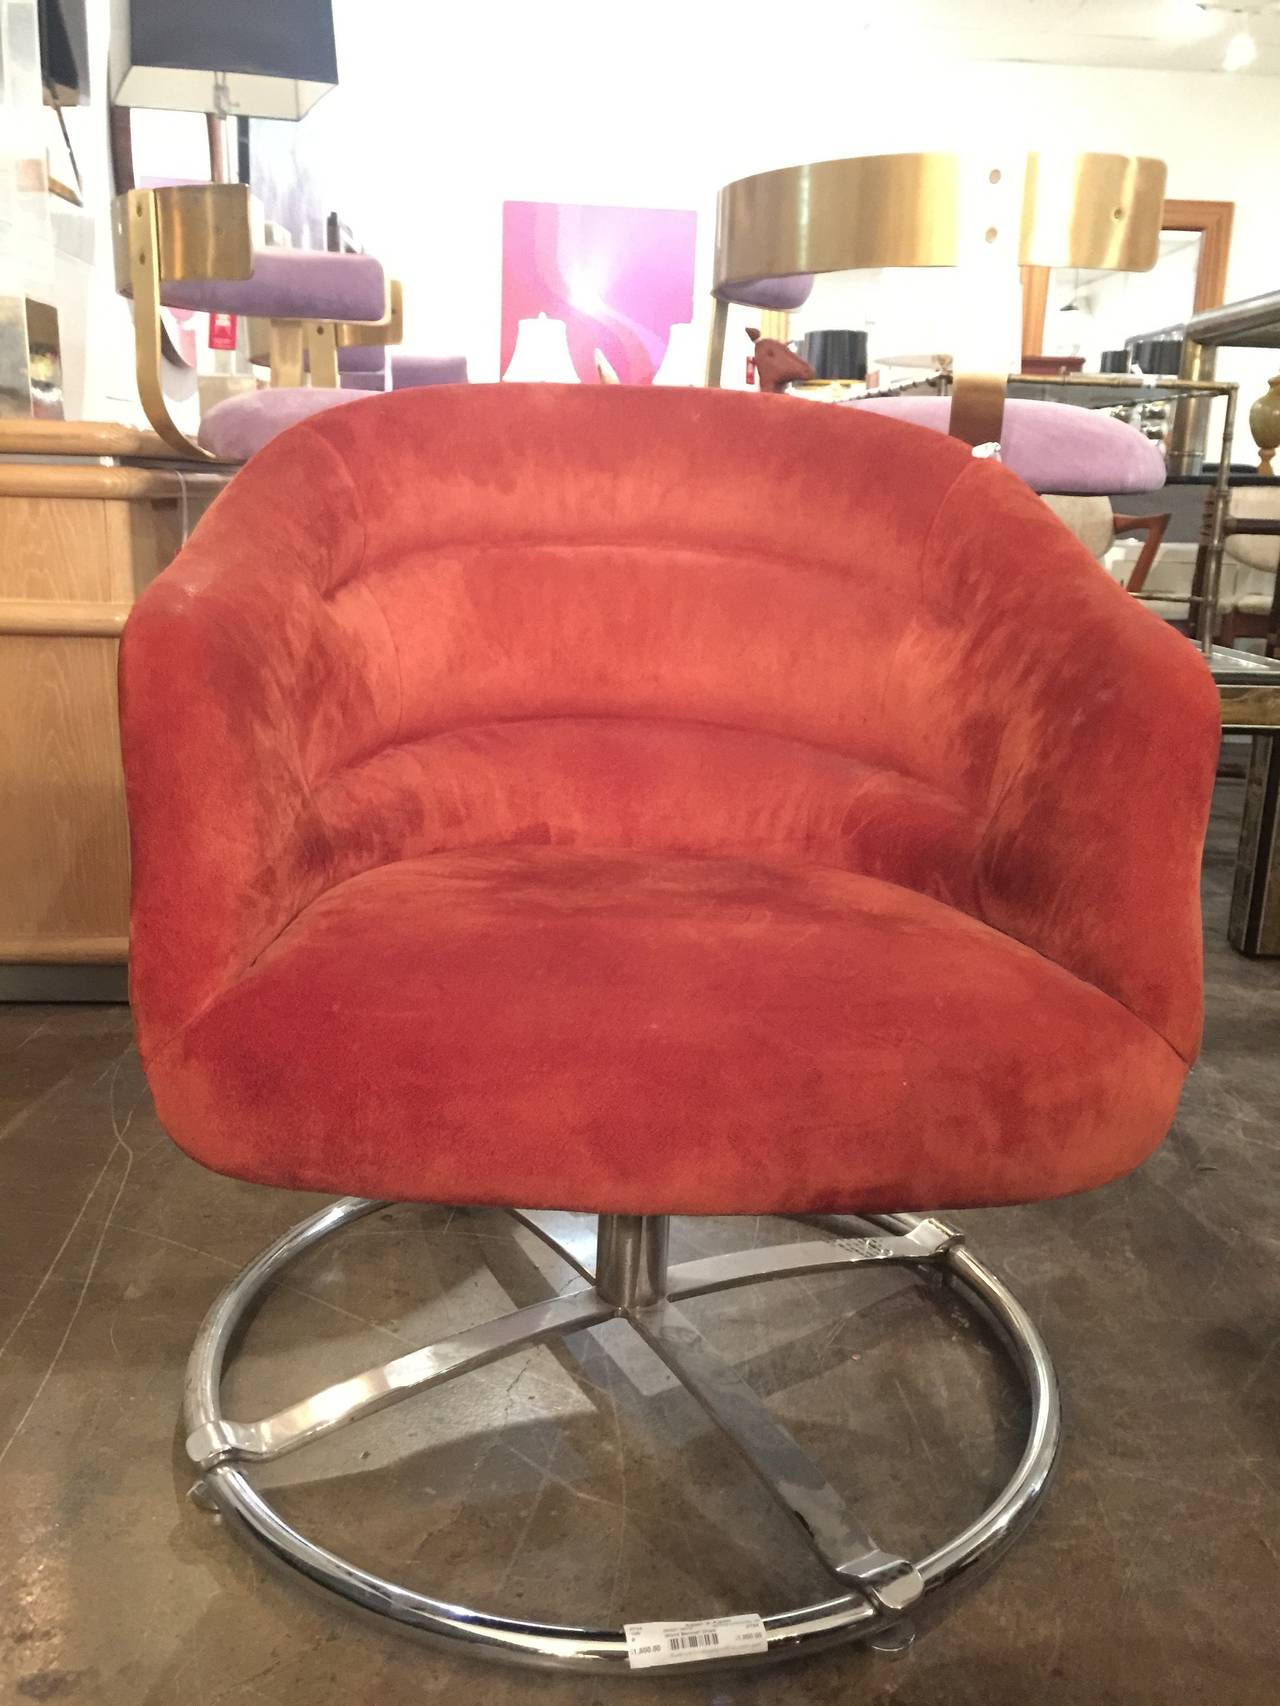 Single Suede Modern Swivel Chair with Chrome Base by Ward Bennett